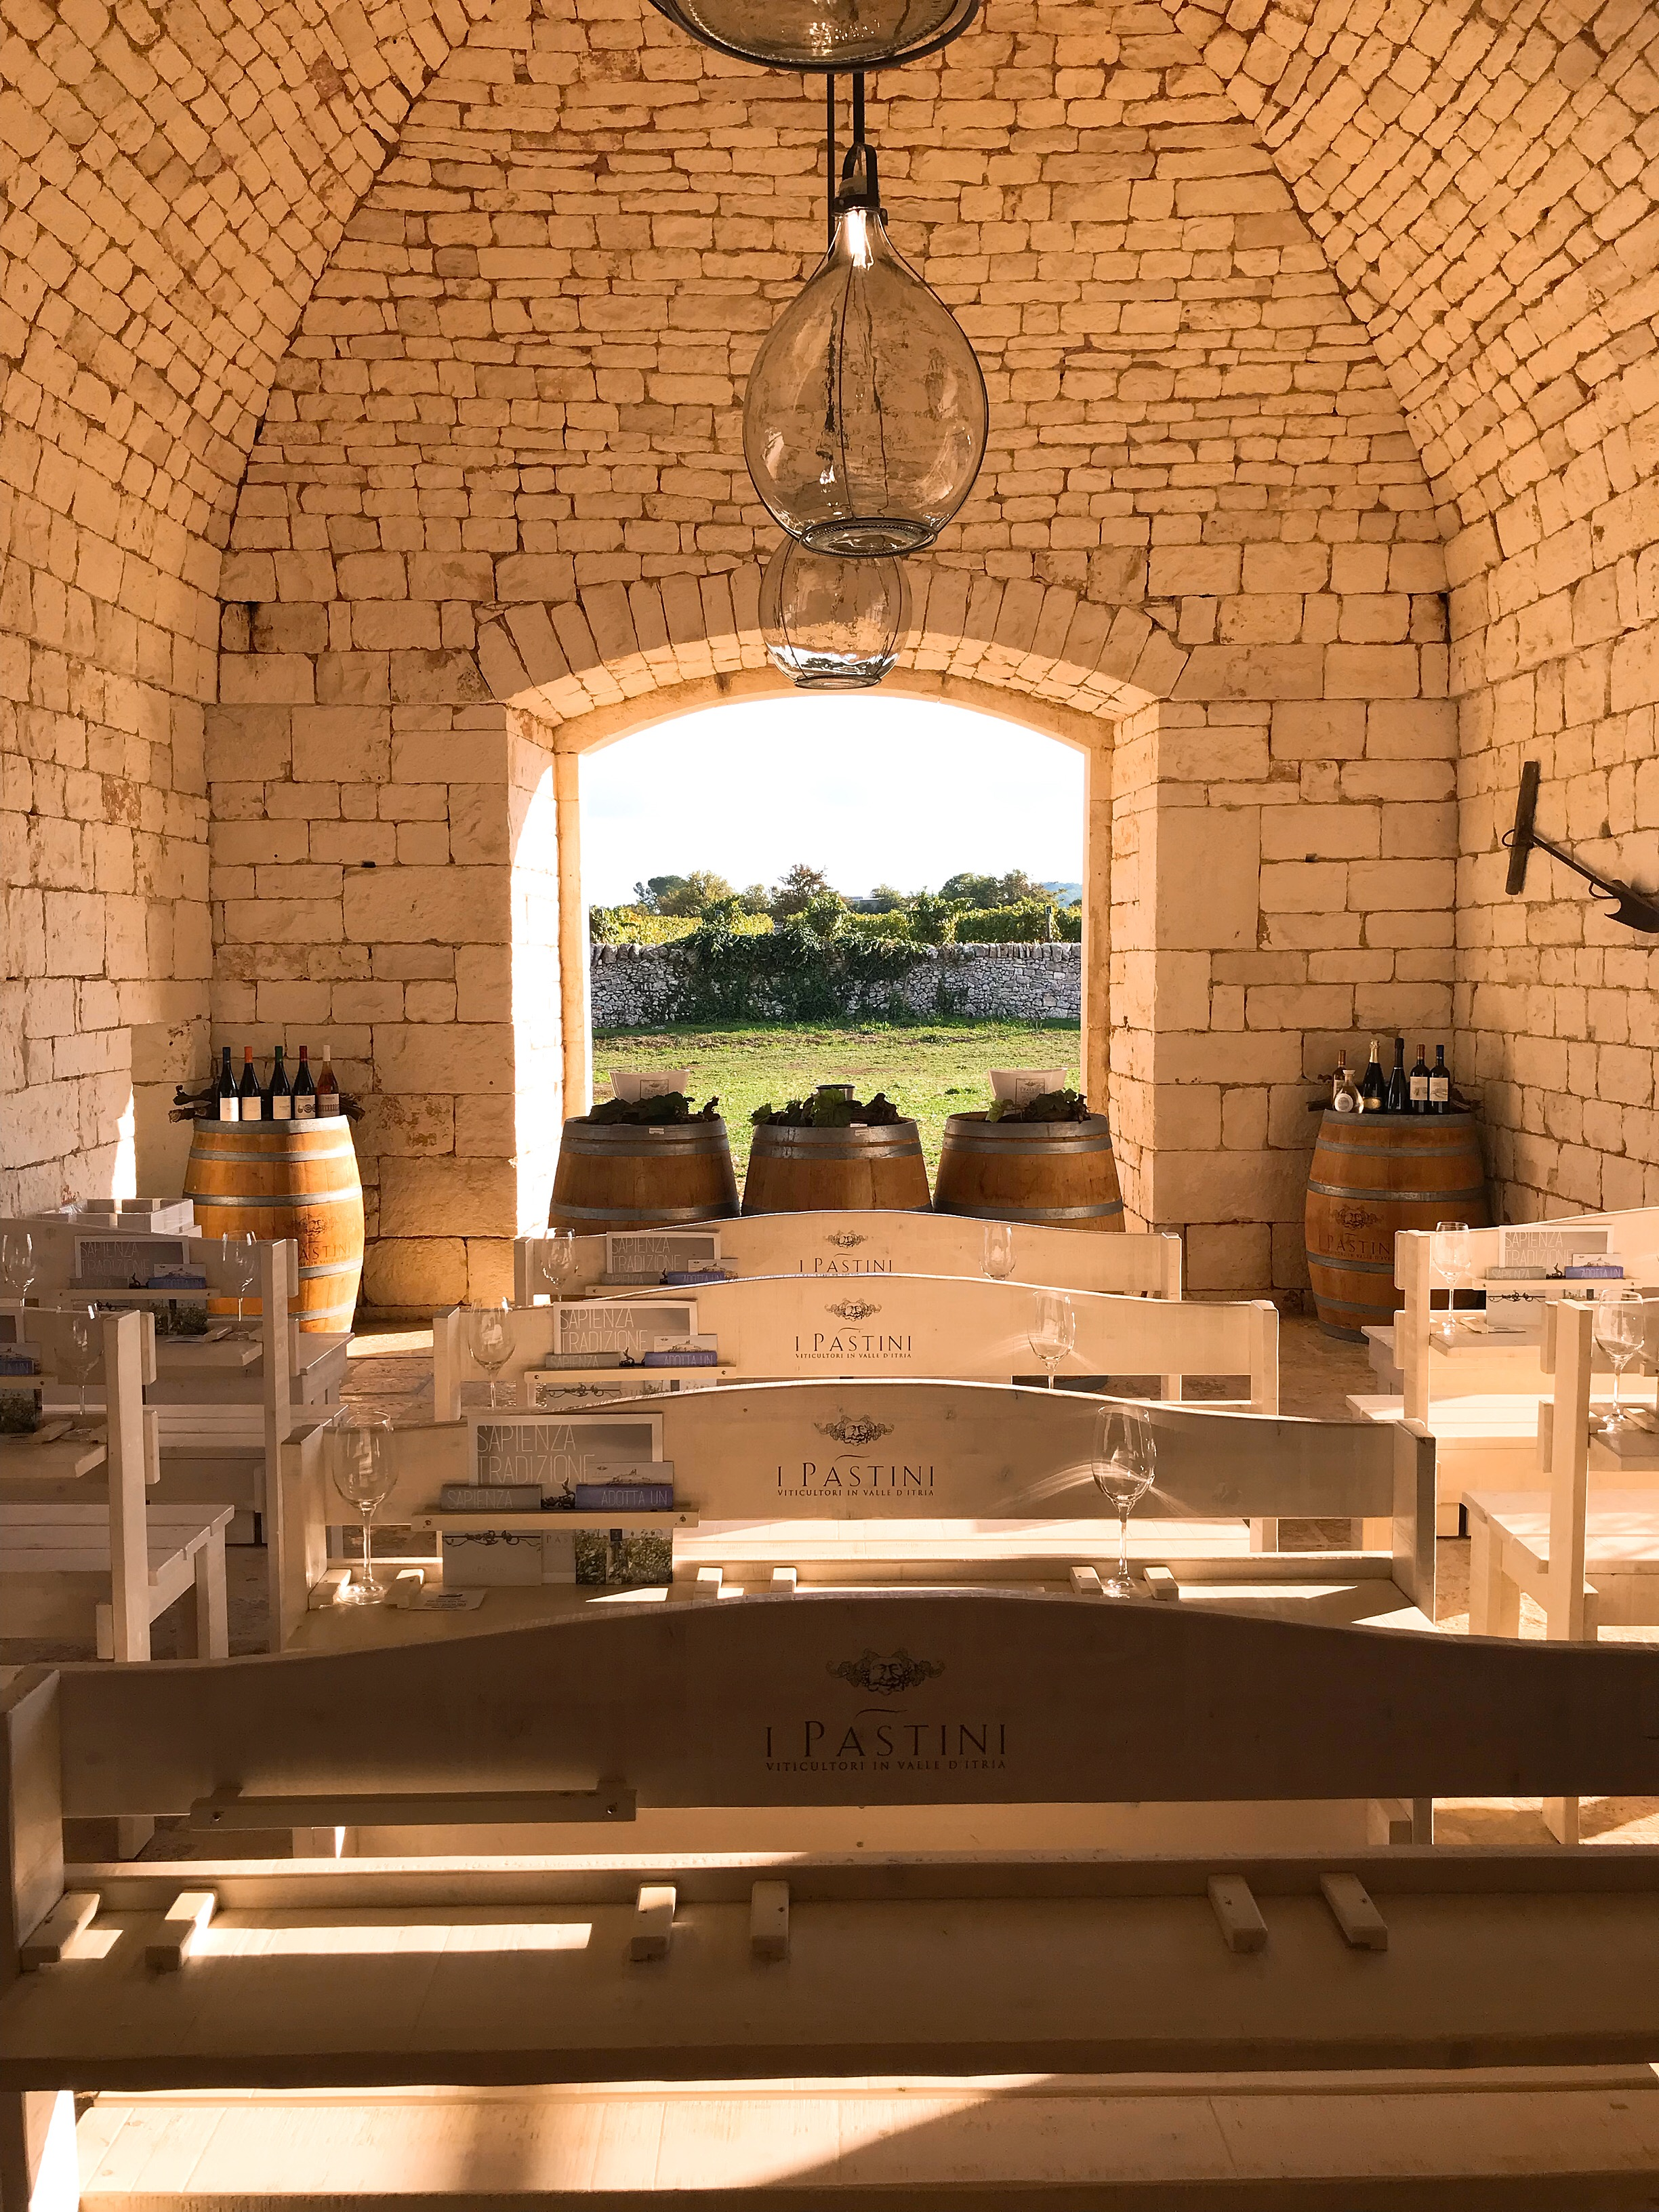 The Tasting Room at I Pàstini